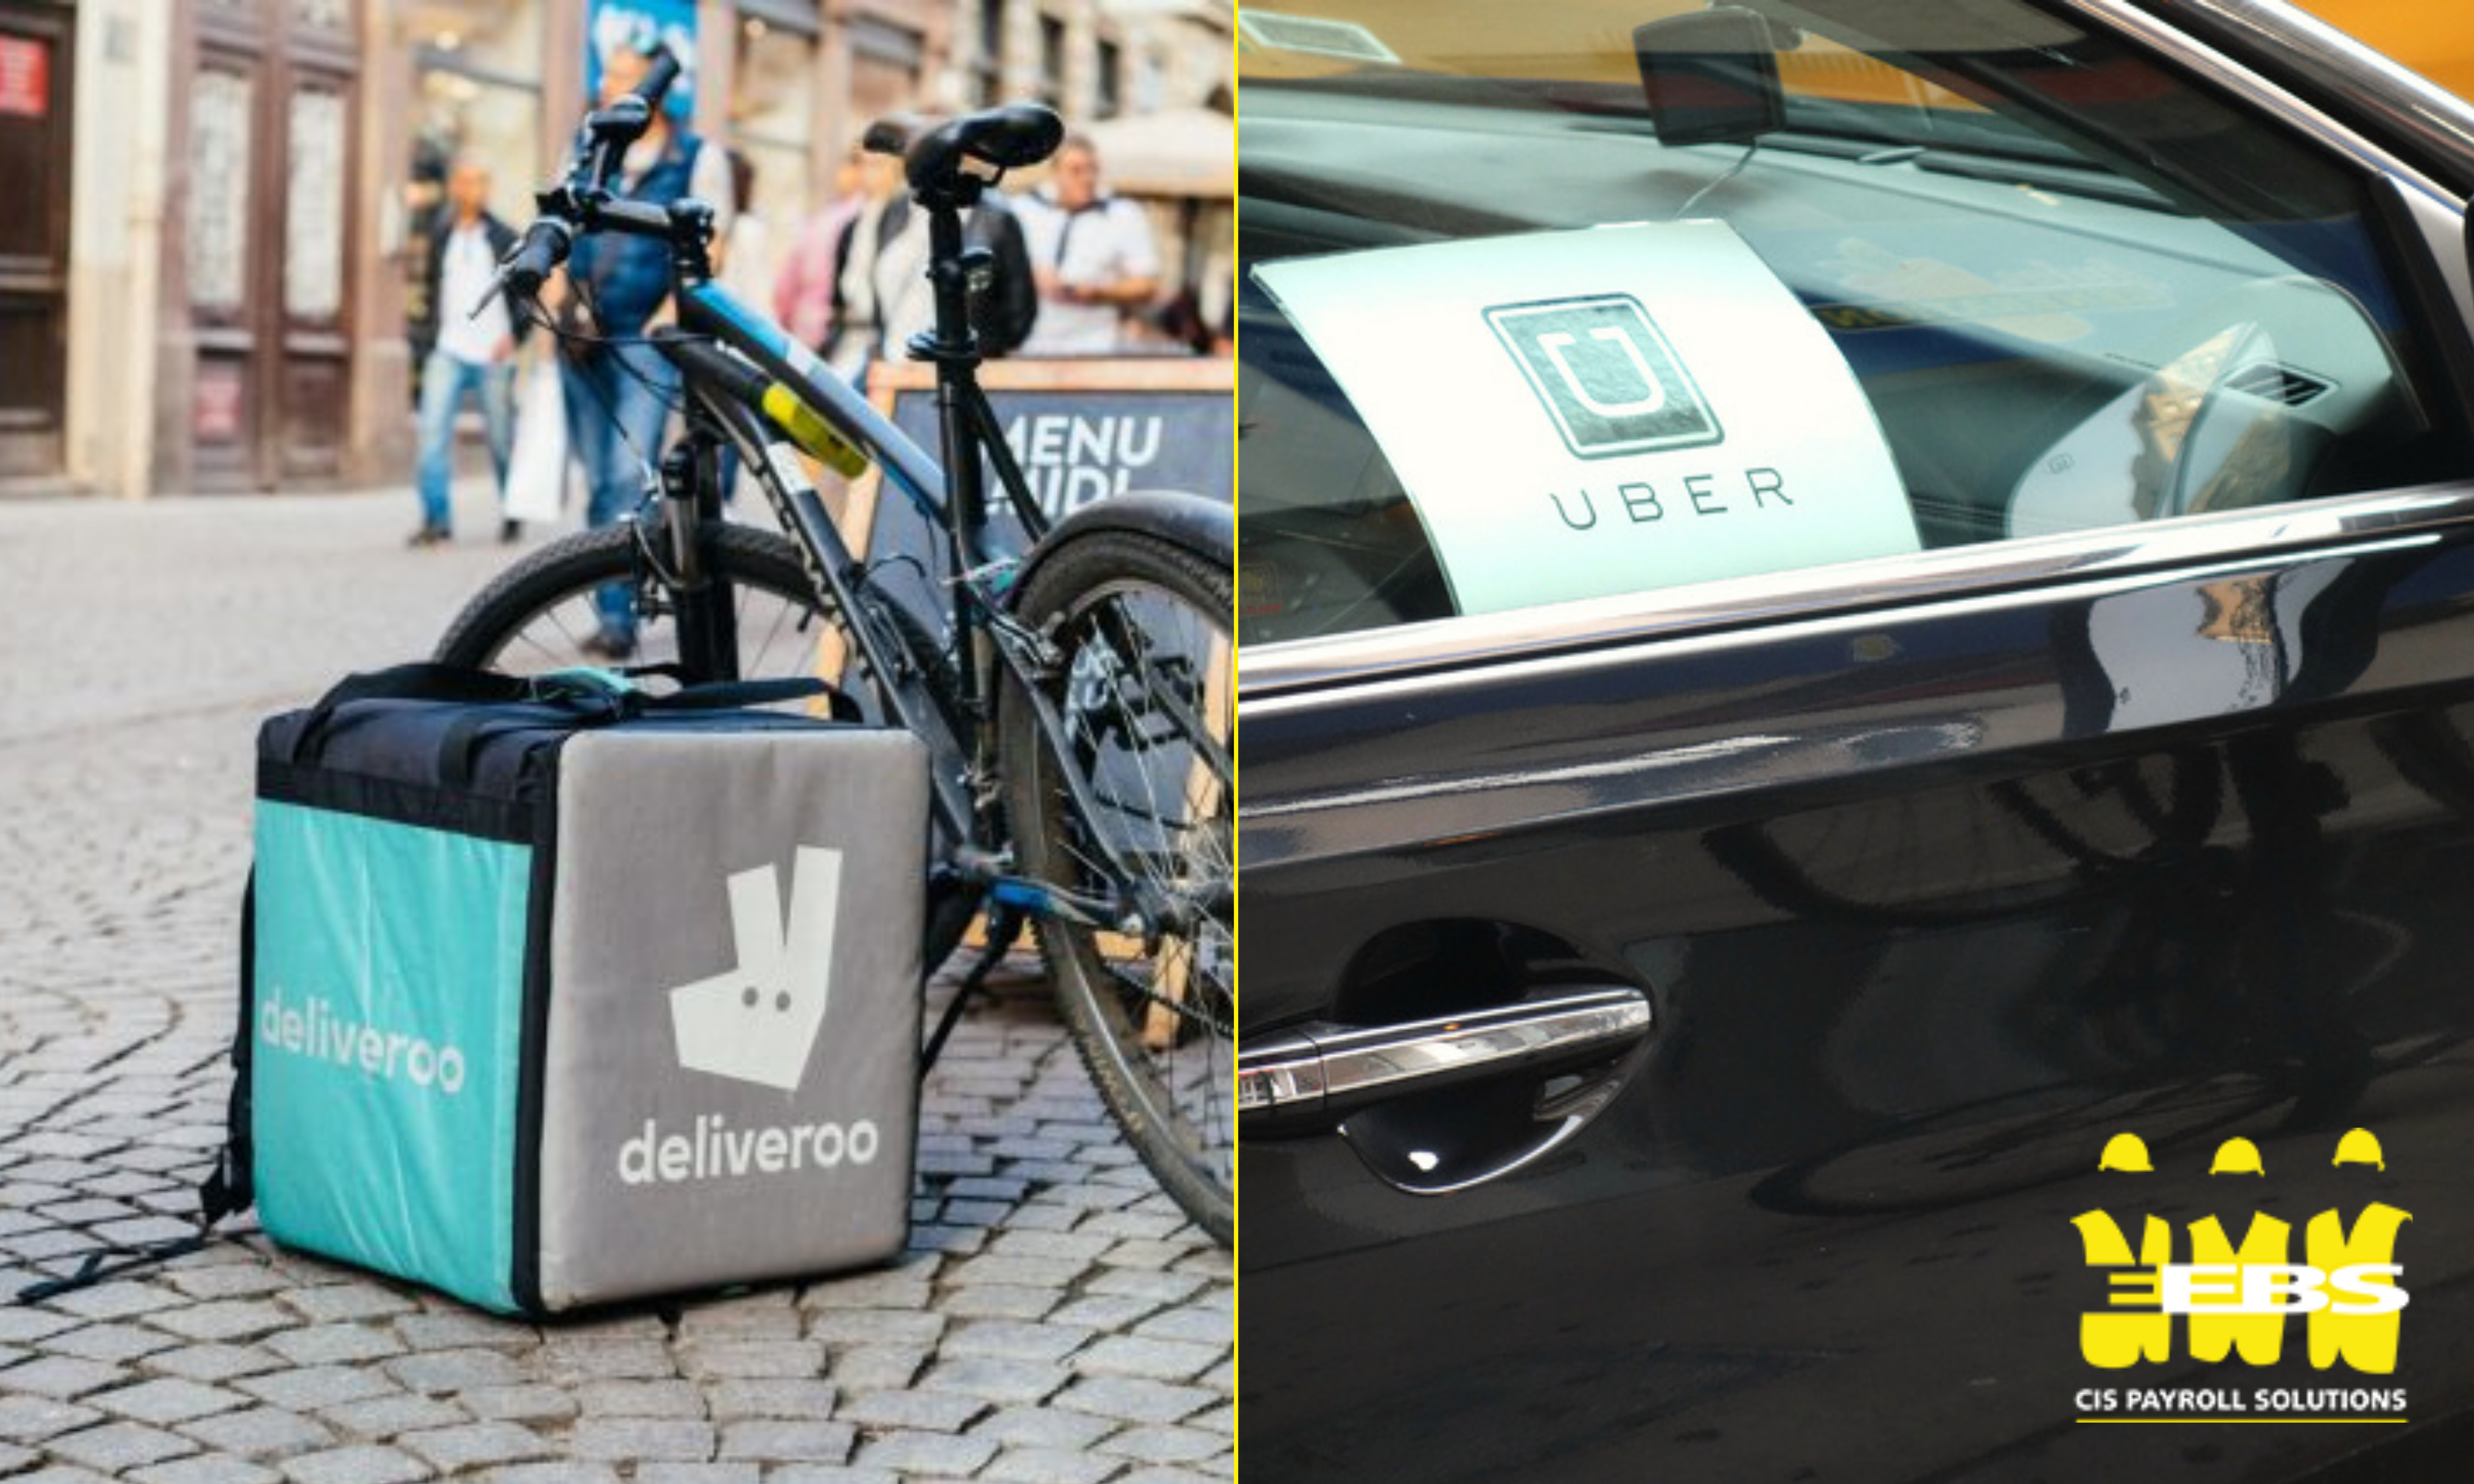 What we can take-away from the Uber & Deliveroo cases